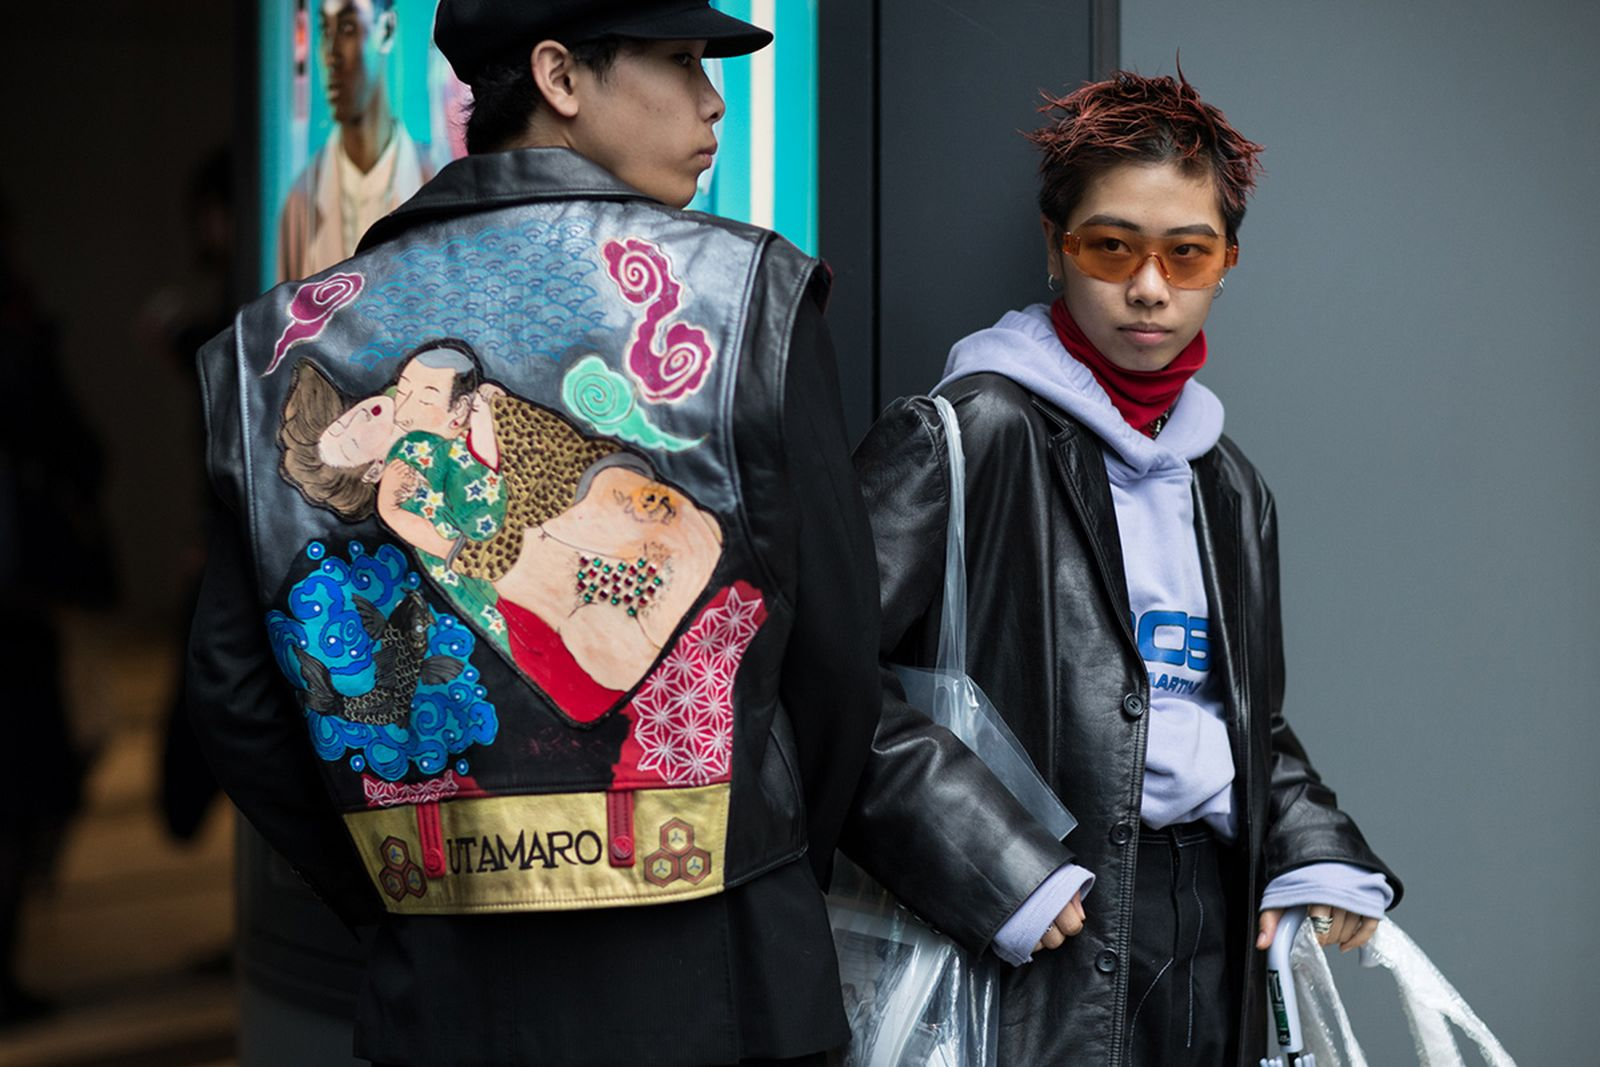 The Bosozoku Japanese Motorcycle Gangs That Influenced Fashion